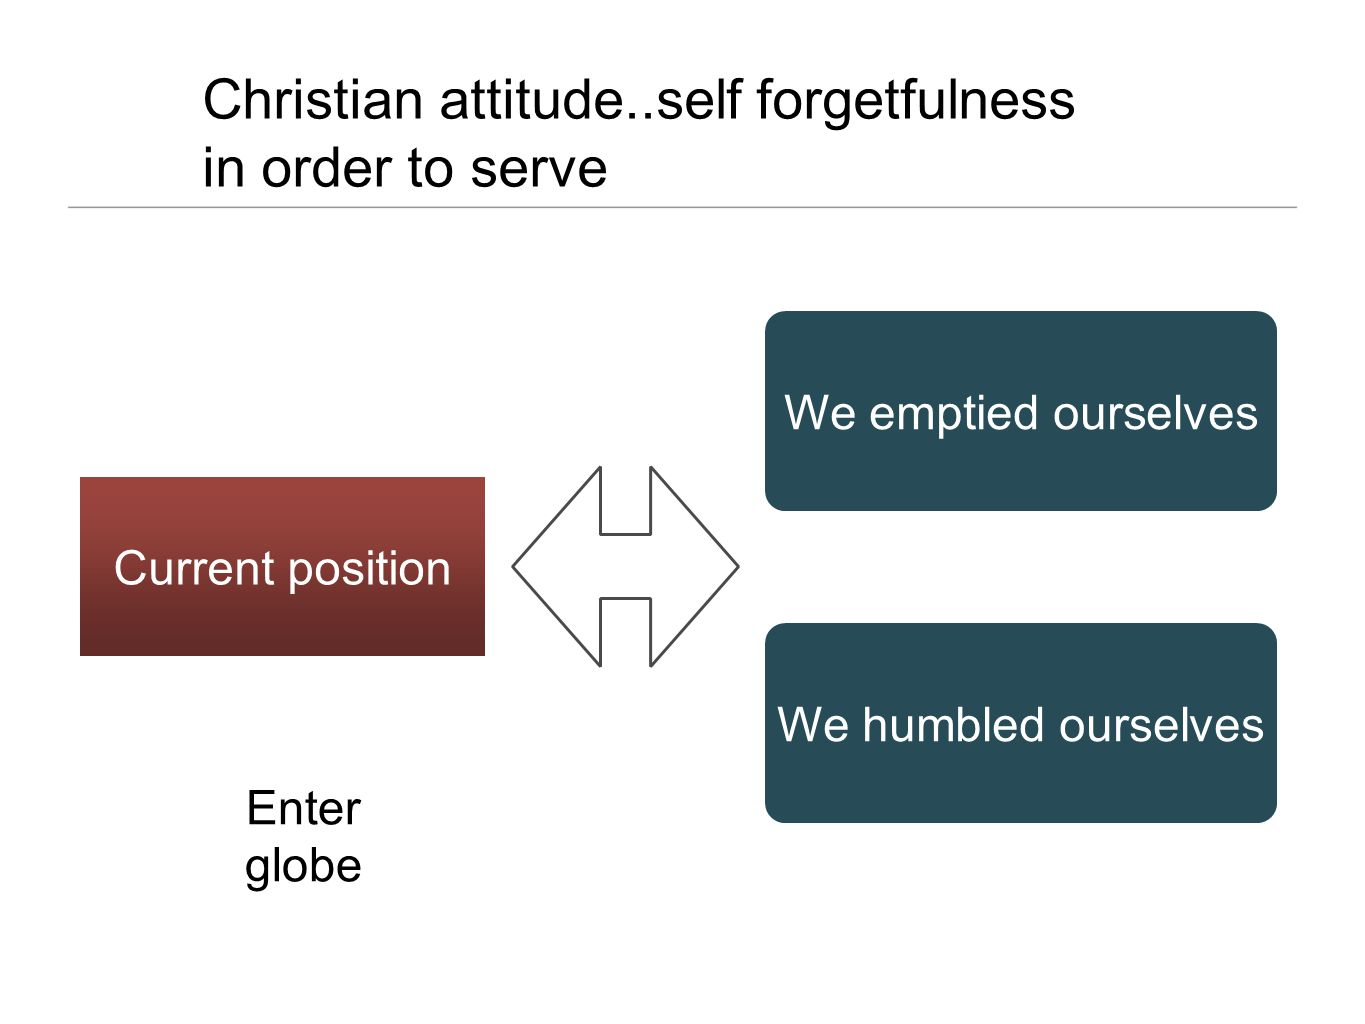 Christian attitude..self forgetfulness in order to serve